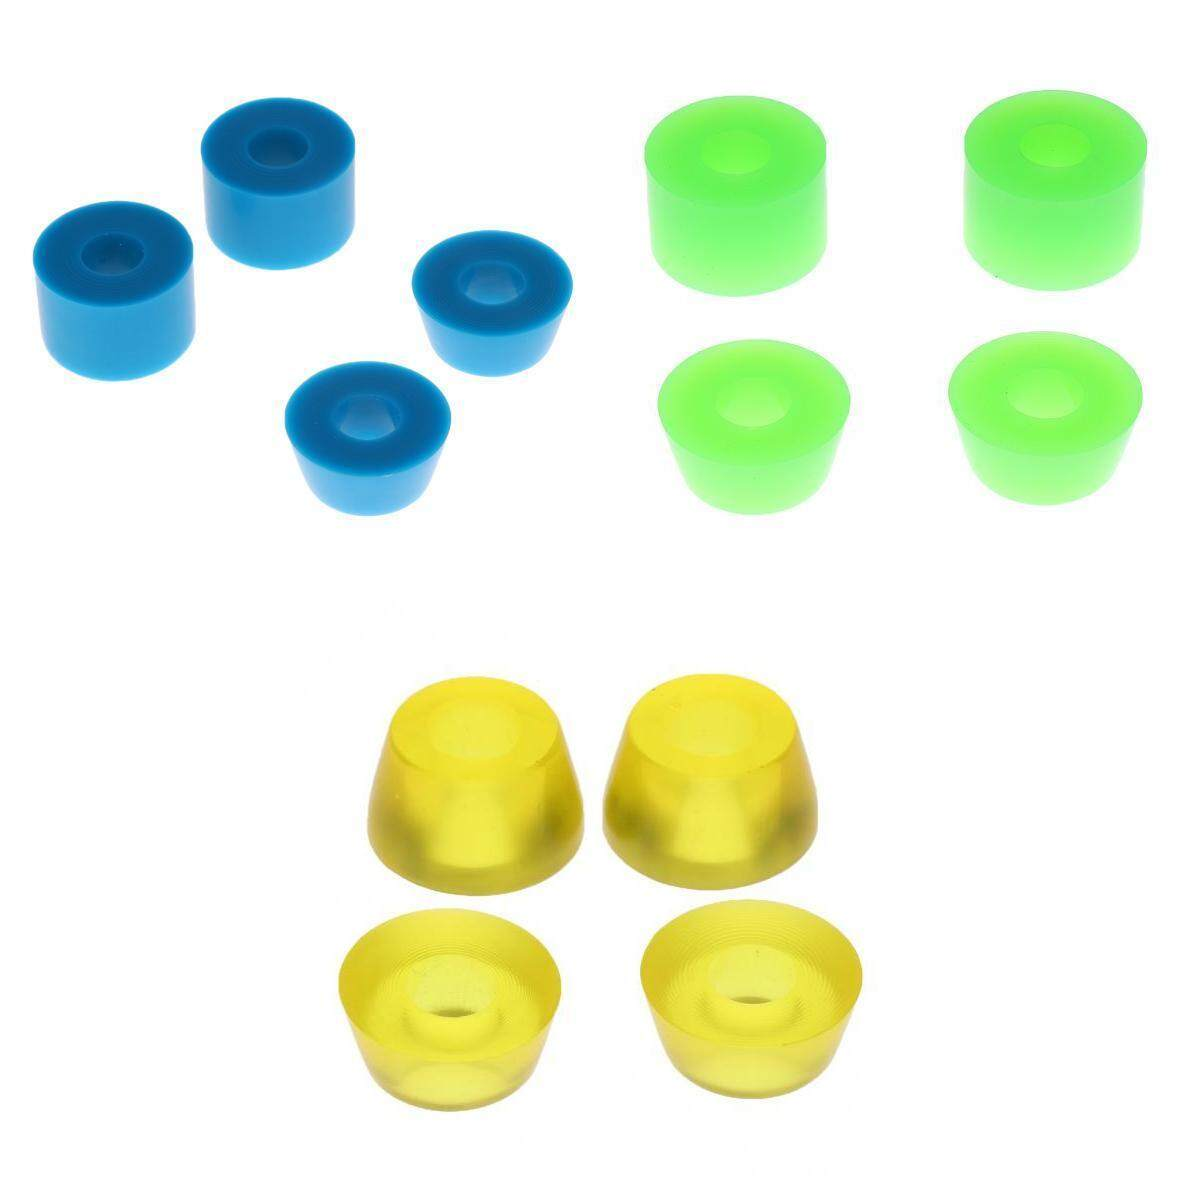 Giá bán MagiDeal 6 Pairs PU Skateboard Bushings Replacement 90A Longboard Truck Accessories